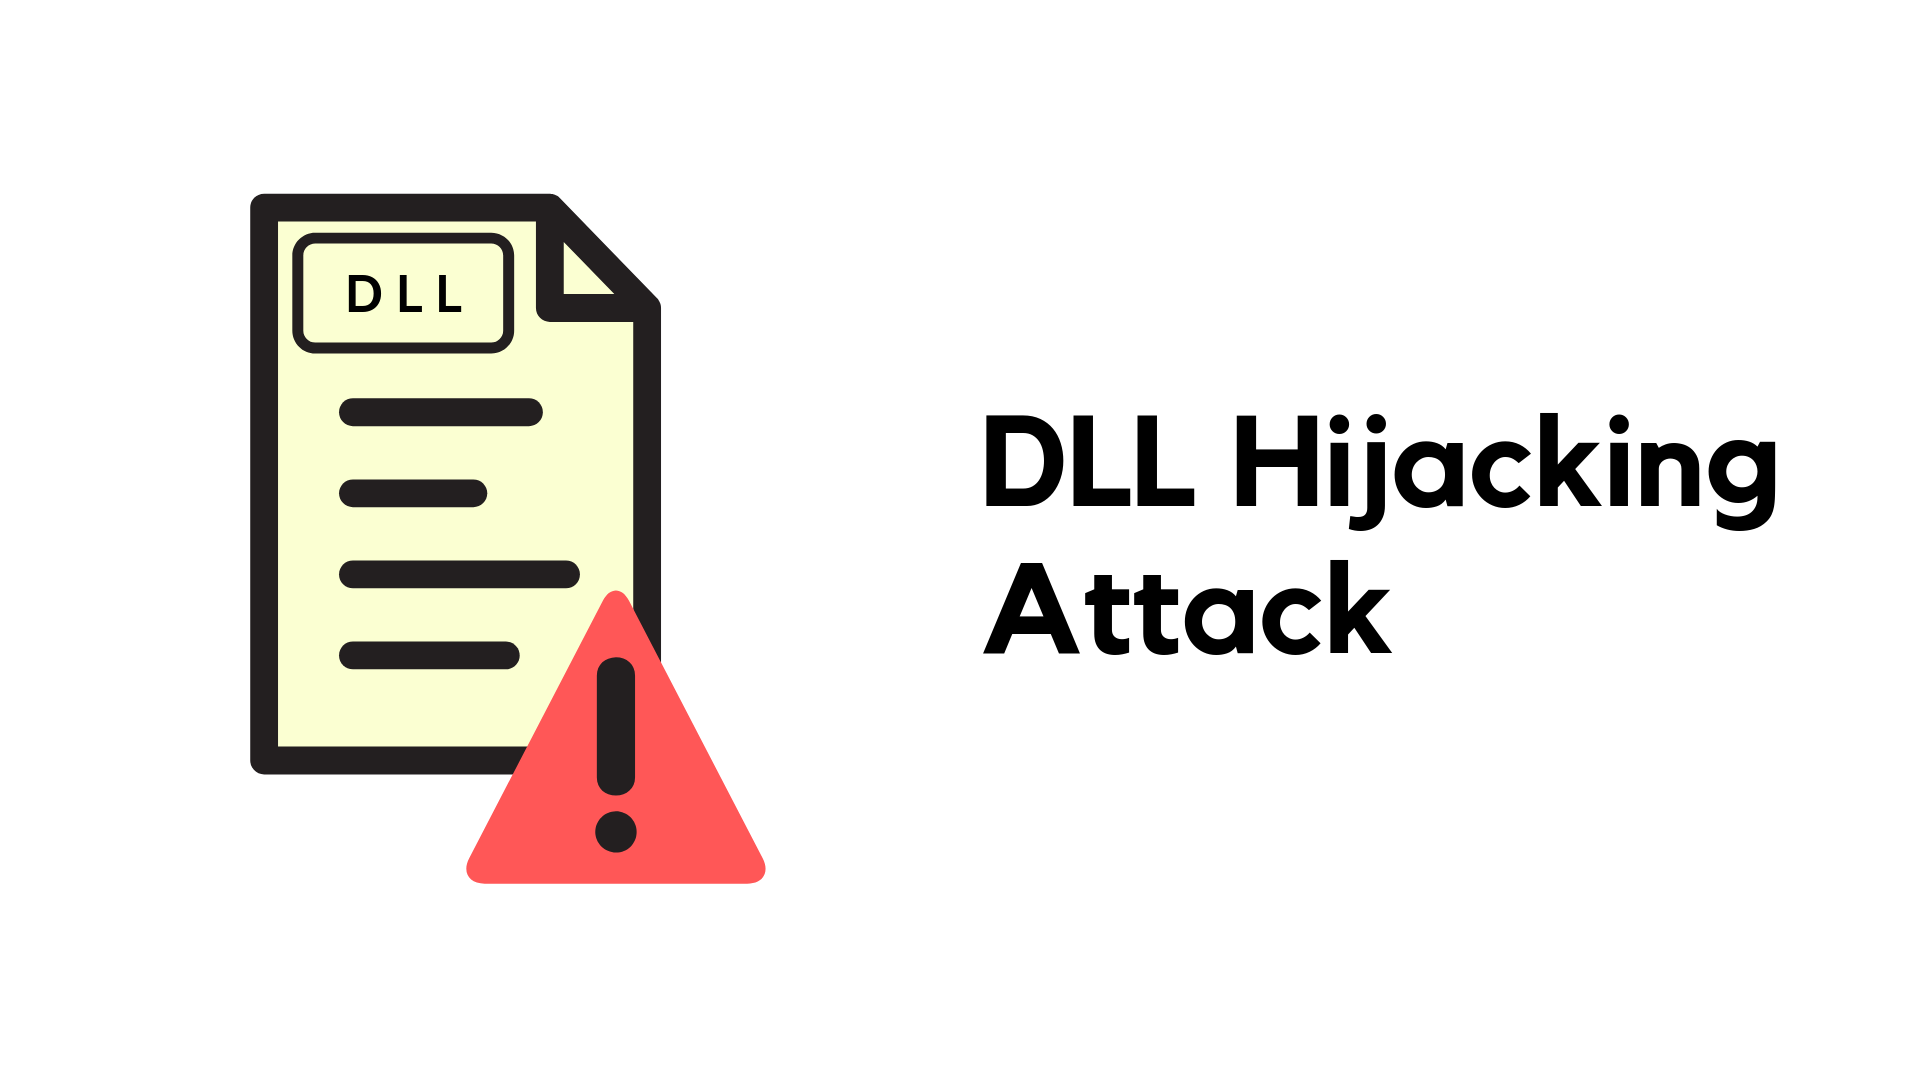 DLL Hijacking attacks: What is it and how to stay protected